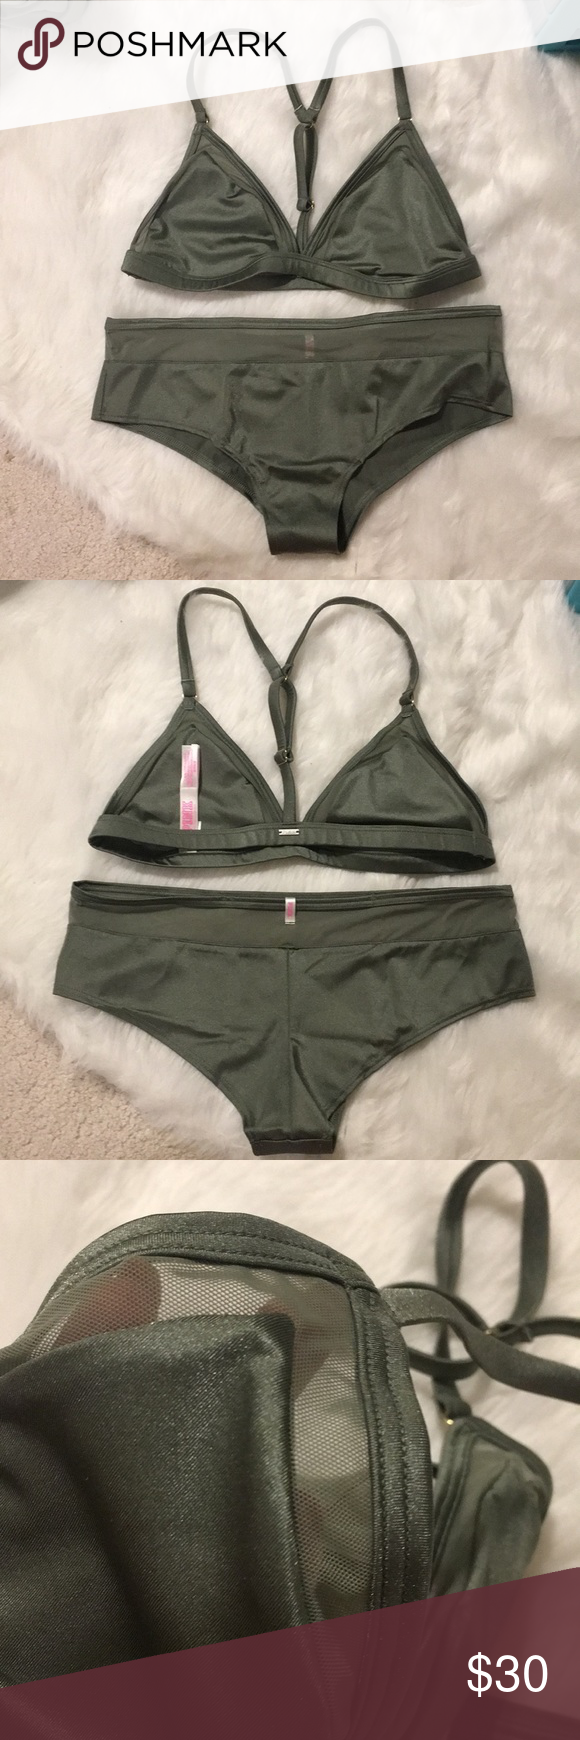 88147e5d233382 Victoria s Secret pink bra and panty set Both are new in packaging size  medium sagebrush green shine with mesh inset. 5 1 PINK Victoria s Secret  Intimates ...